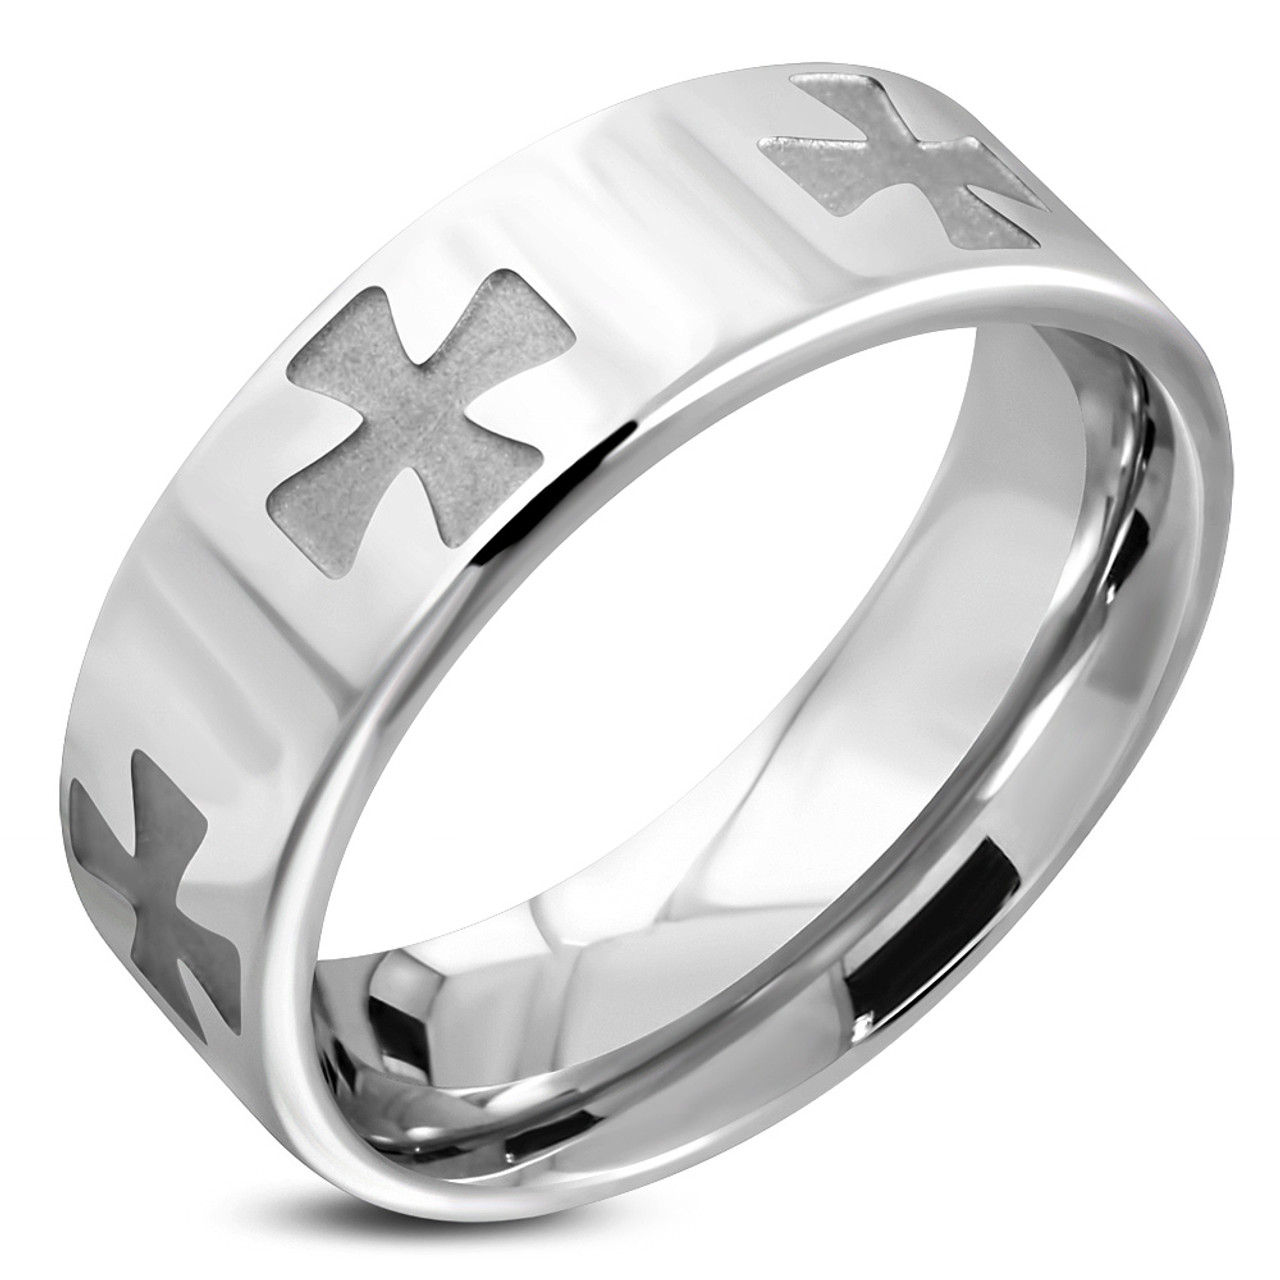 Stainless Steel 2 Color Criss-Cross Milgrain Edge Comfort Fit Wedding Band Ring with Clear CZ